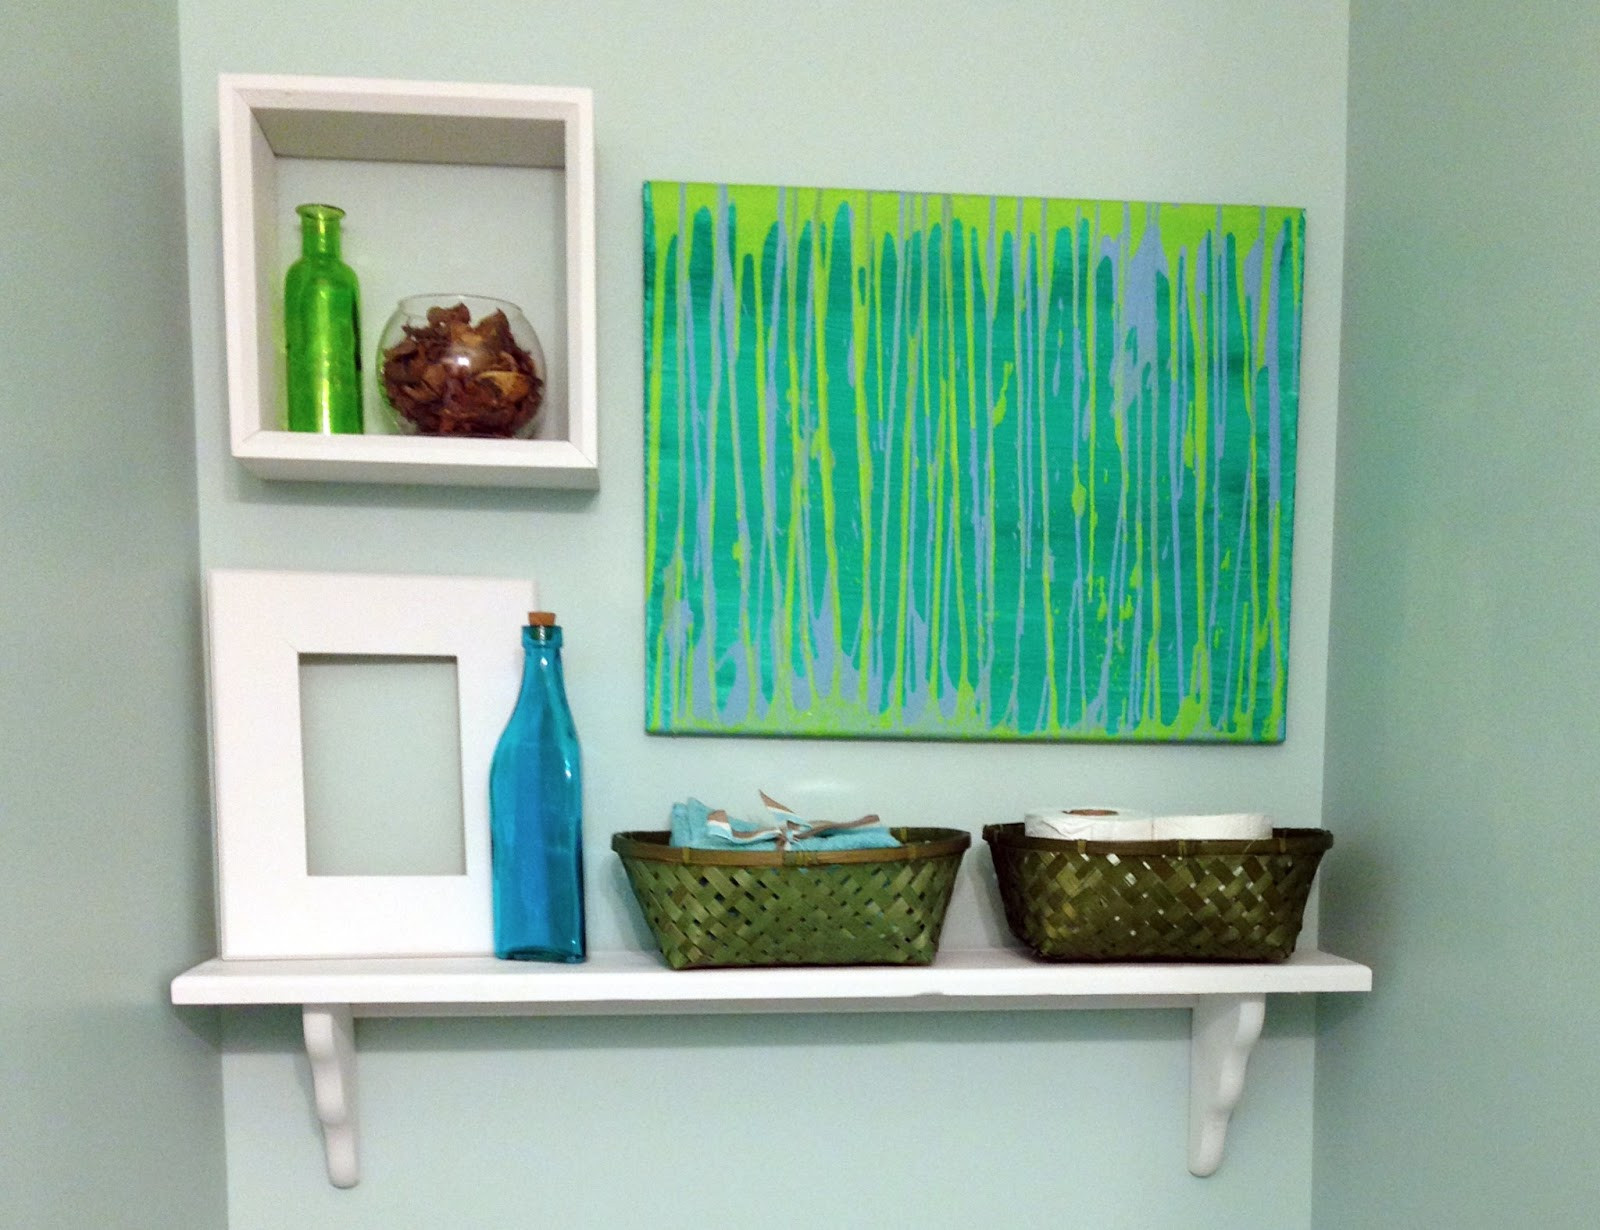 Best ideas about DIY Canvas Paintings . Save or Pin The Artsy Collection DIY Canvas Art Now.